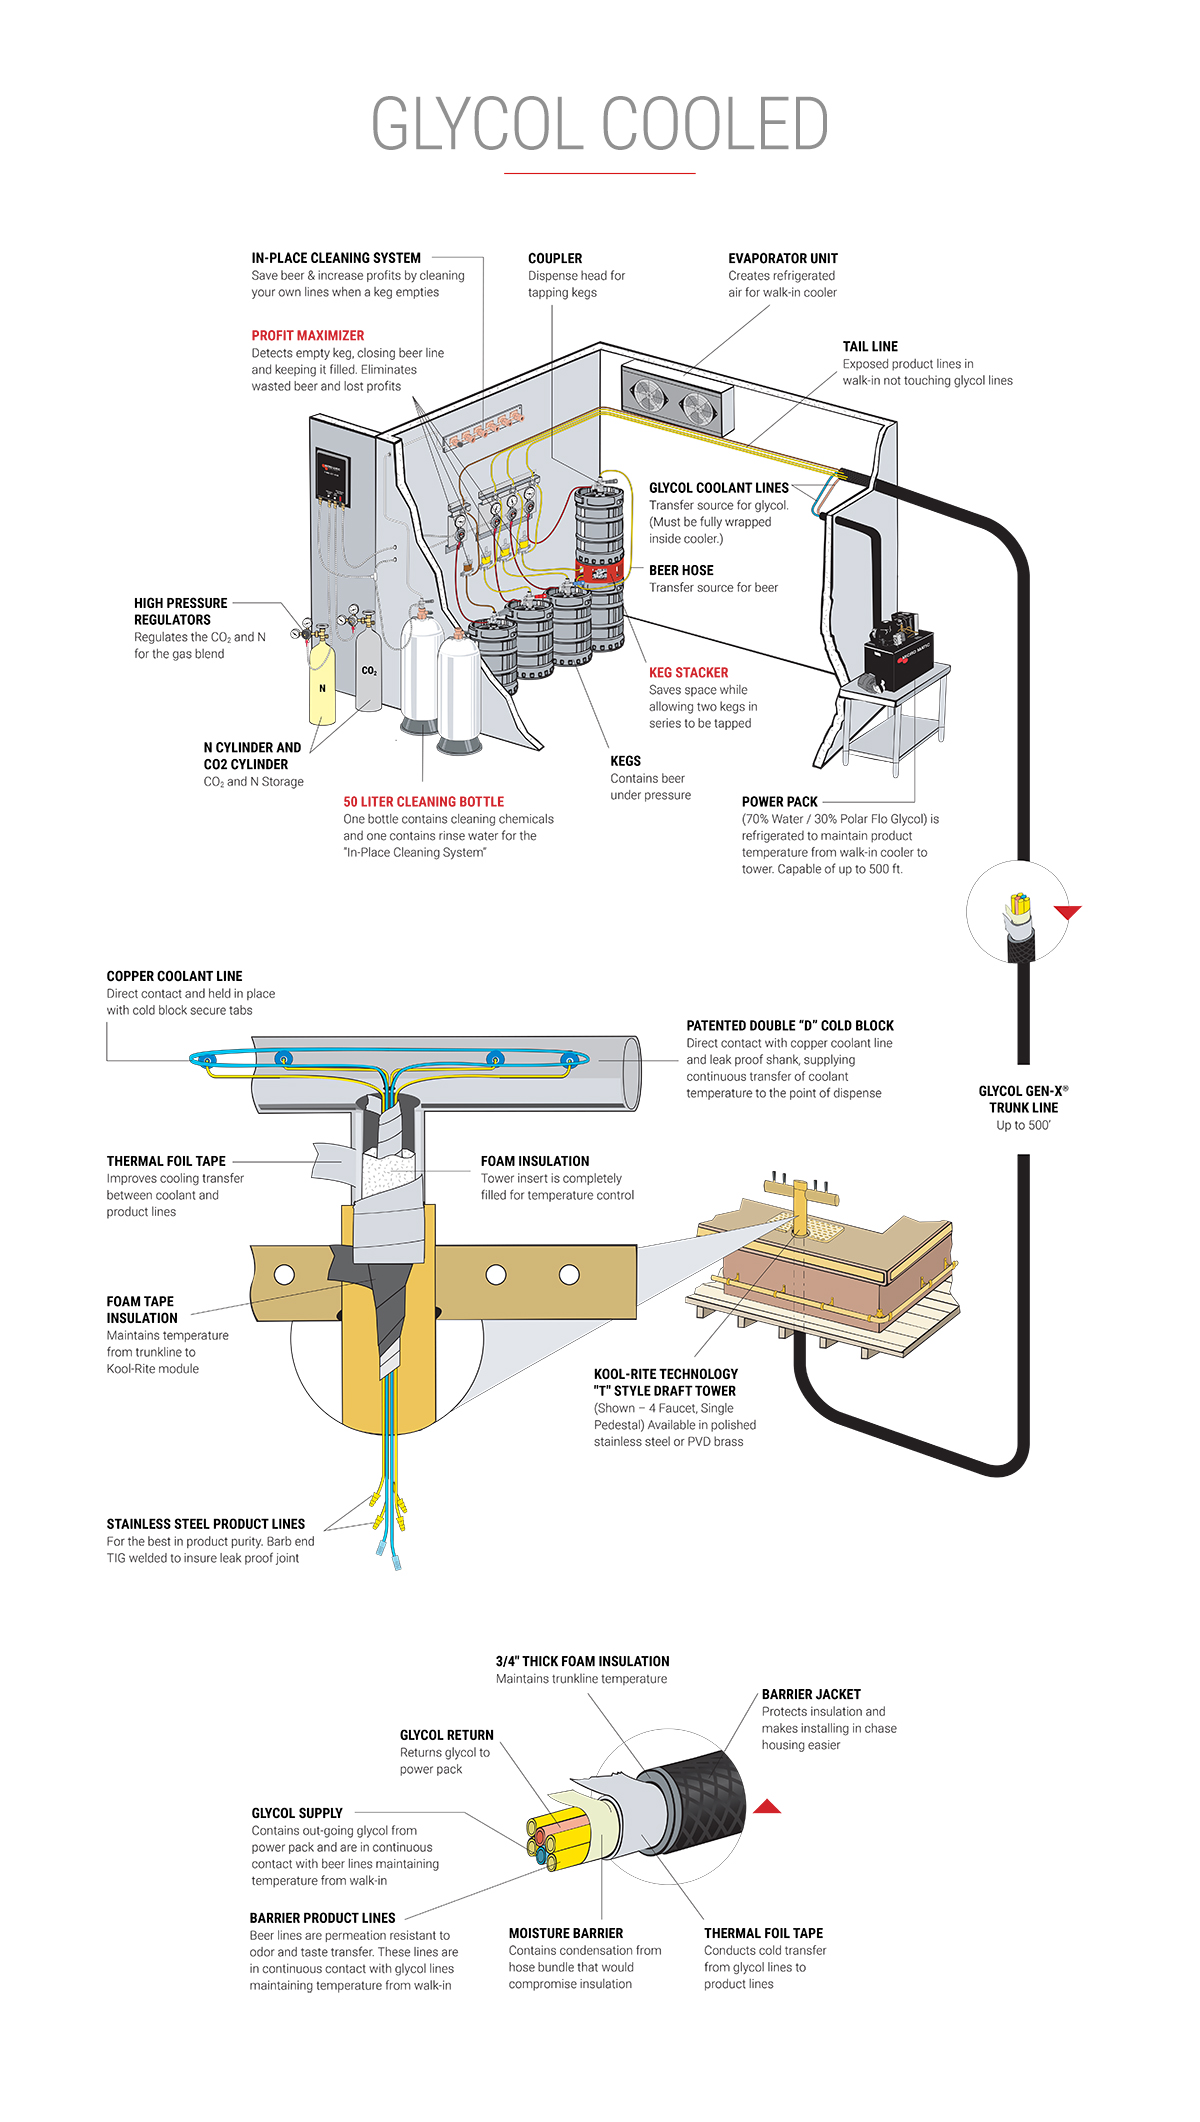 micro matic chiller wiring diagram wiring diagramdraft beer systemsmicro matic chiller wiring diagram 2